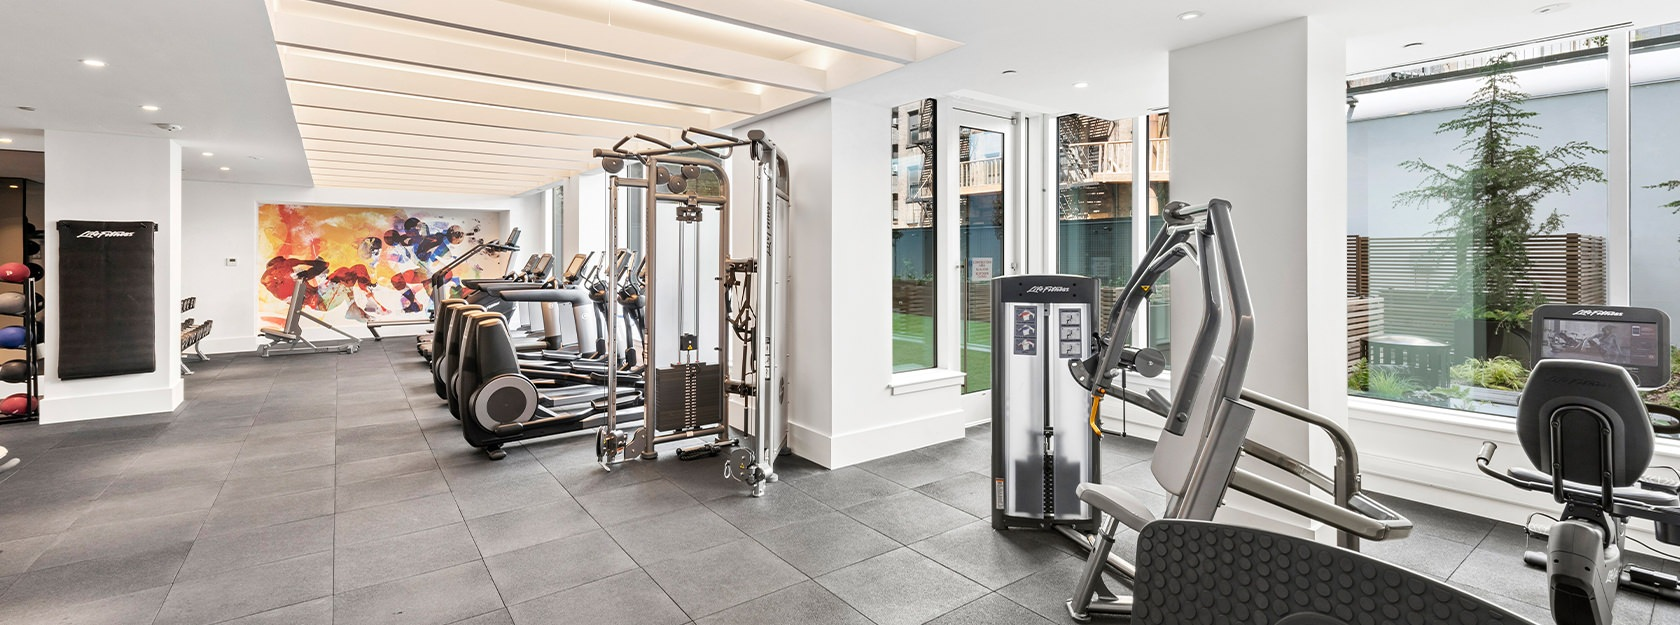 Eve East Village Fitness center with large windows